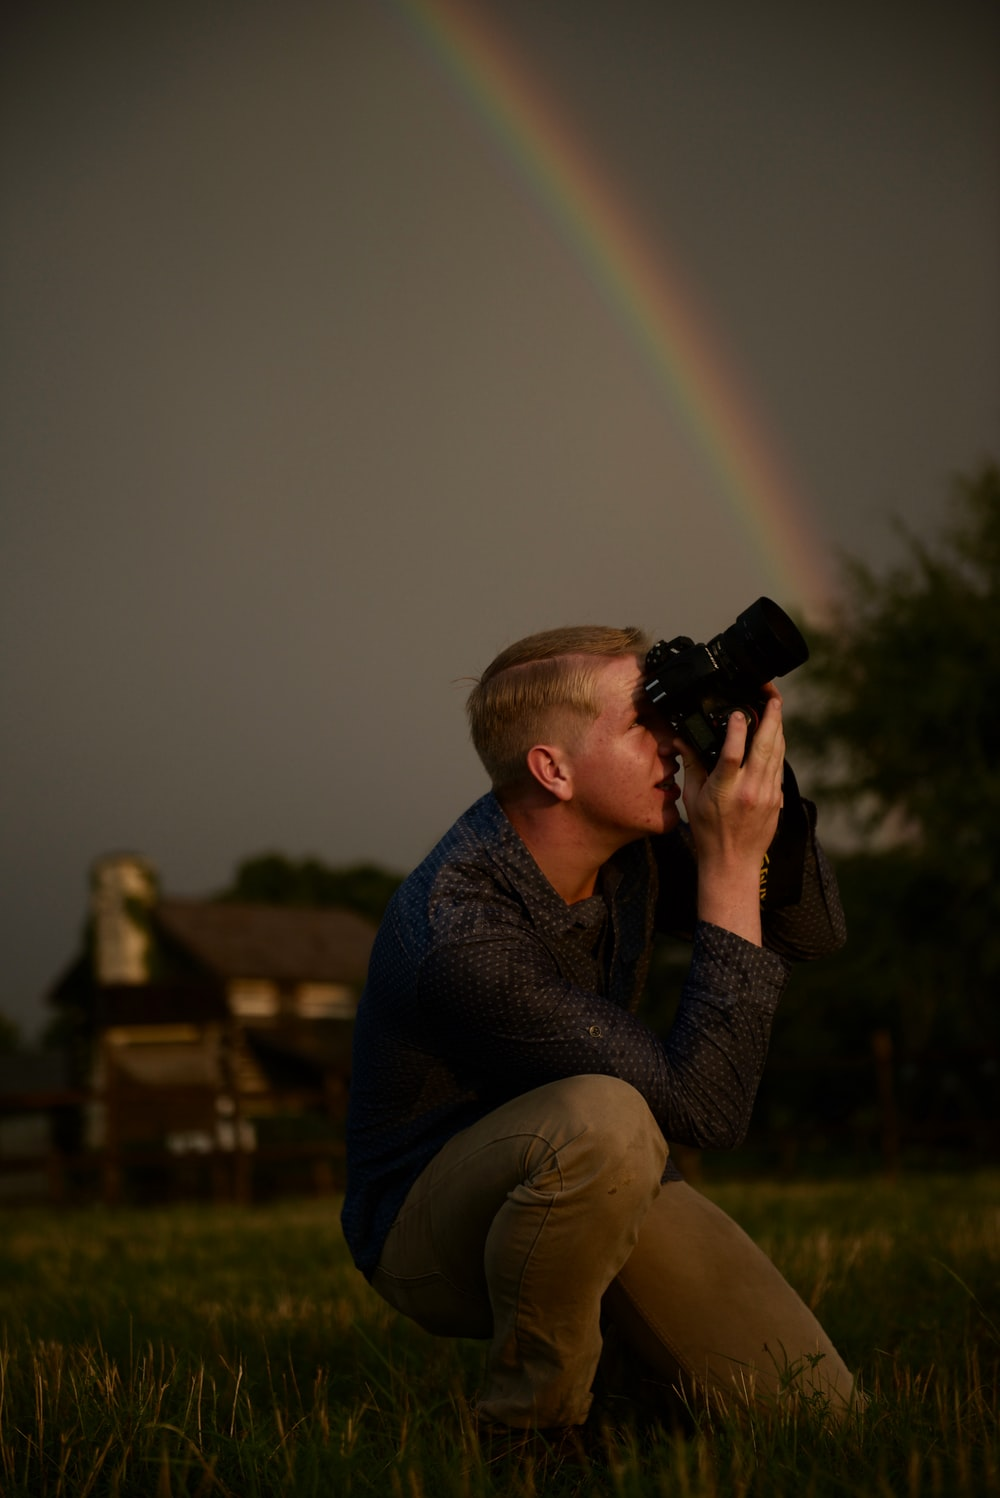 man kneeling while using DSLR camera